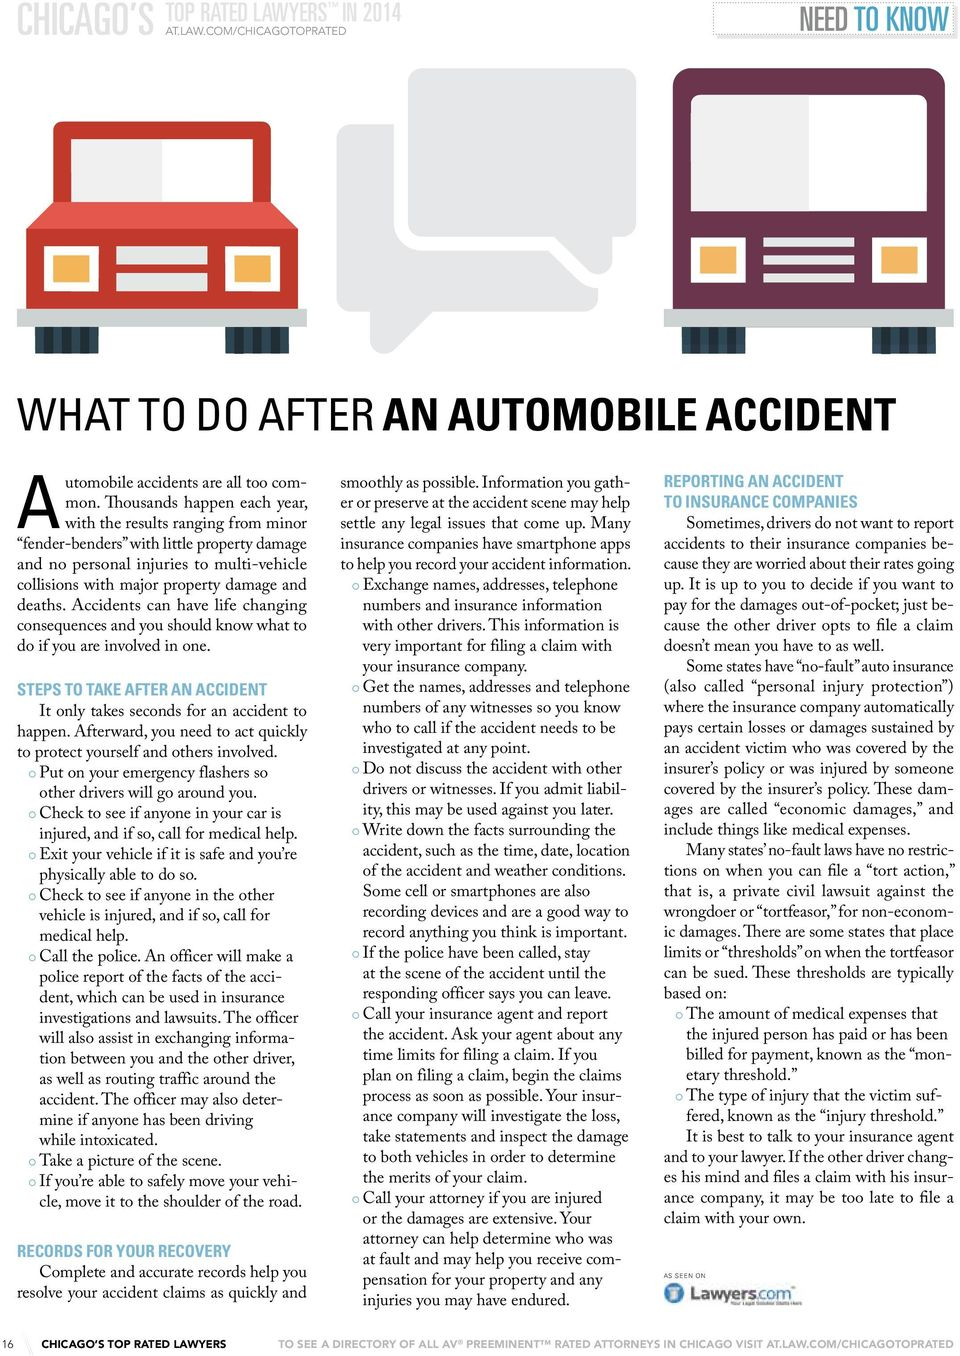 Accidents can have life changing consequences and you should know what to do if you are involved in one. steps to take after an accident It only takes seconds for an accident to happen.